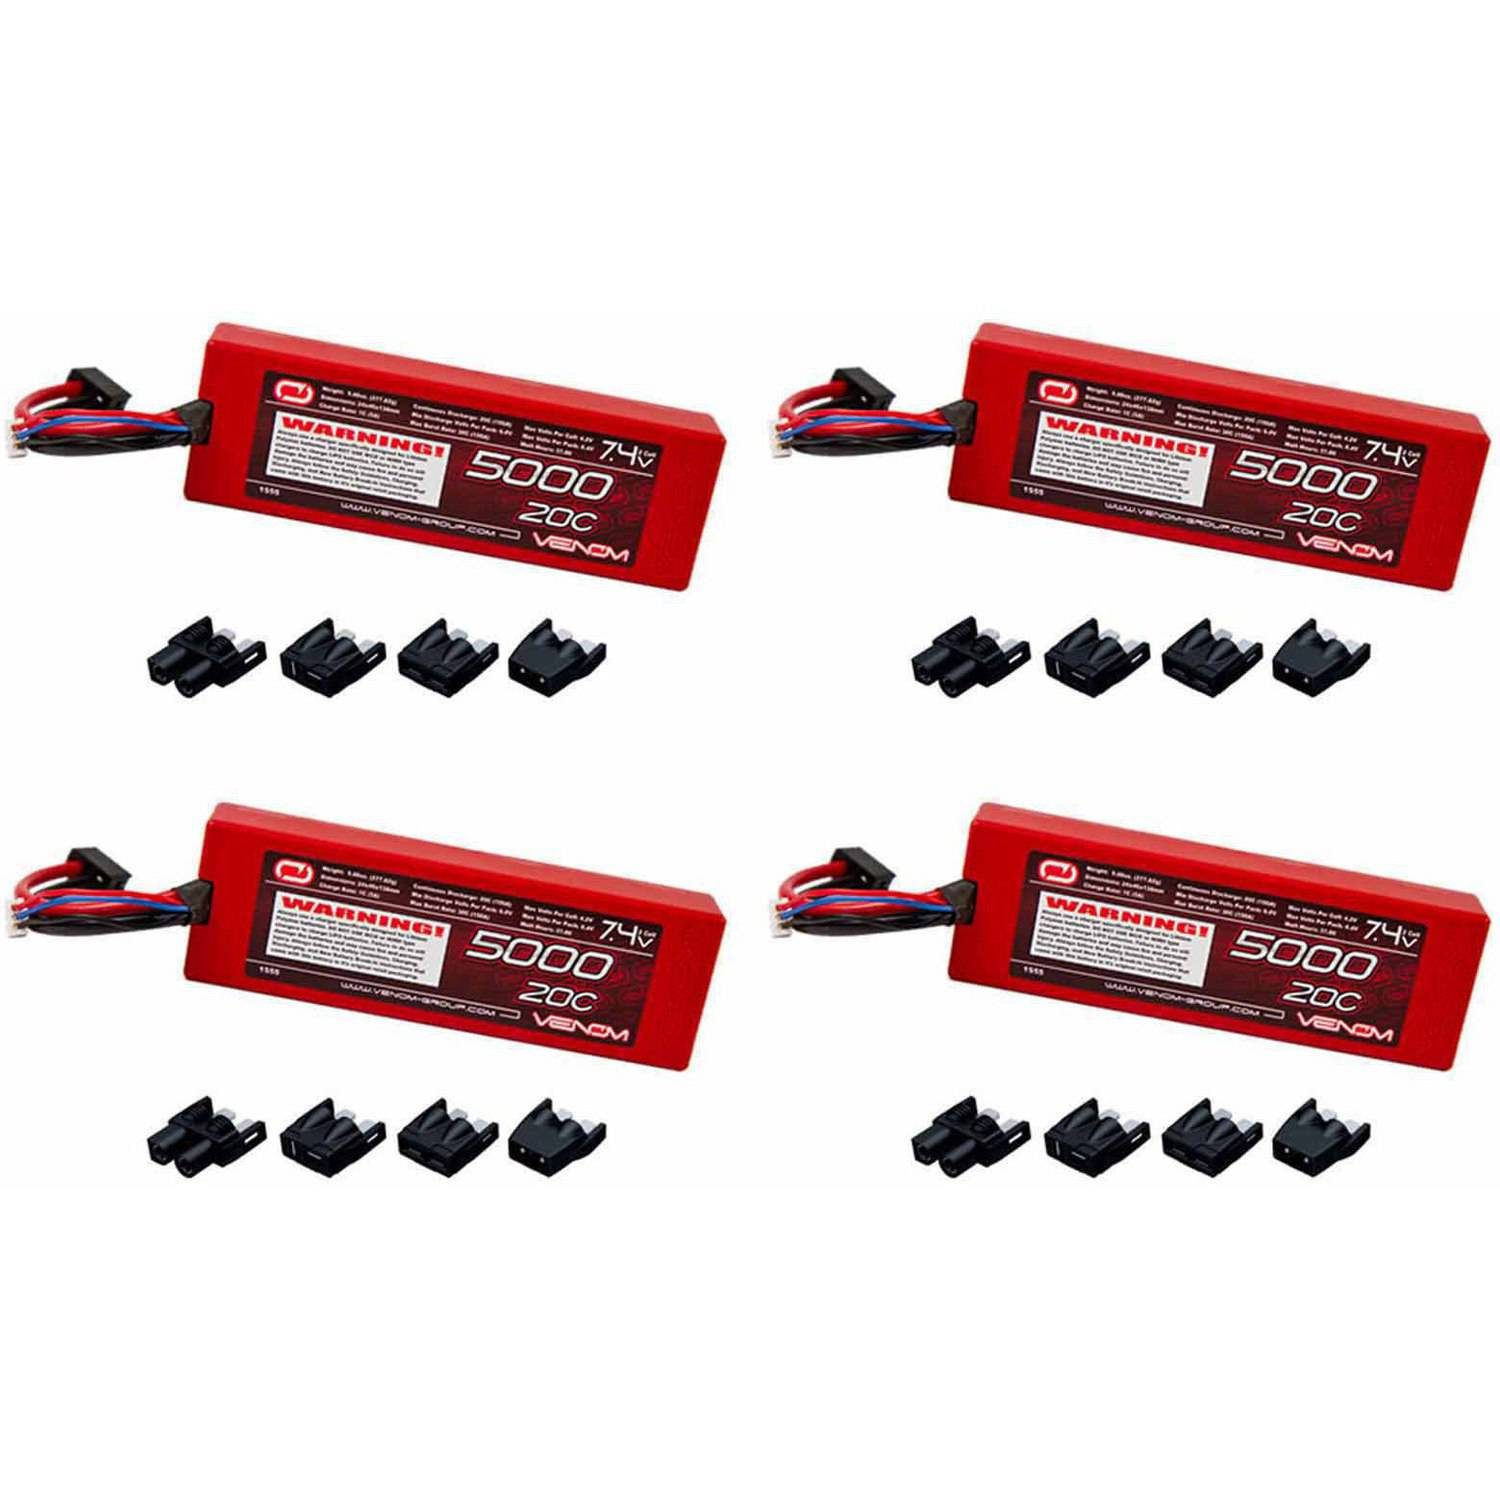 Venom 20C 2S 5000mAh 7.4V Hard Case LiPo Battery with Universal Plug (EC3/Deans/Traxxas/Tamiya) x4 Packs